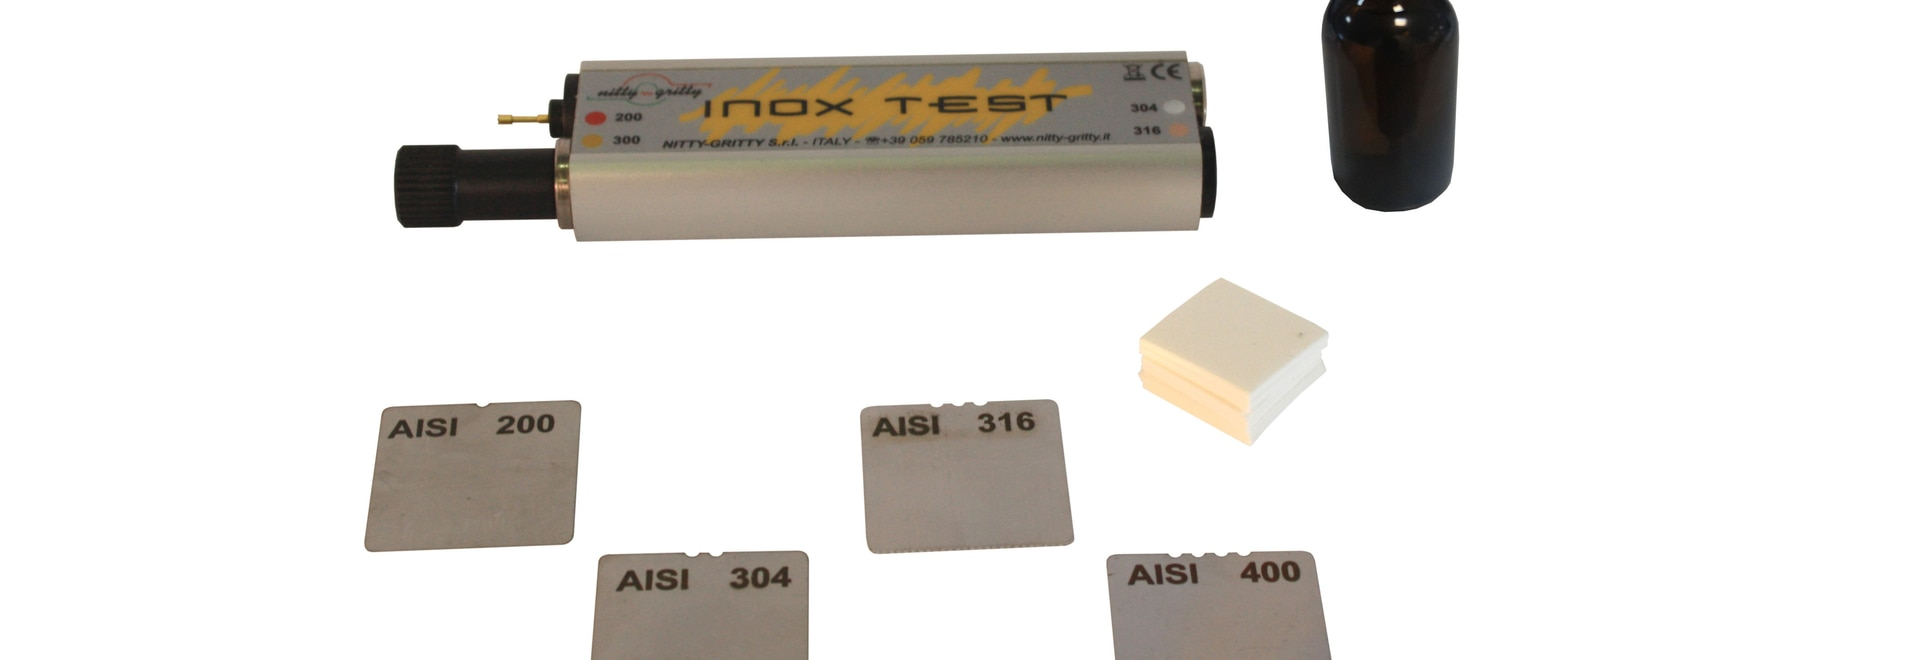 INOX TEST: How to recognize the AISI class of your stainless steel